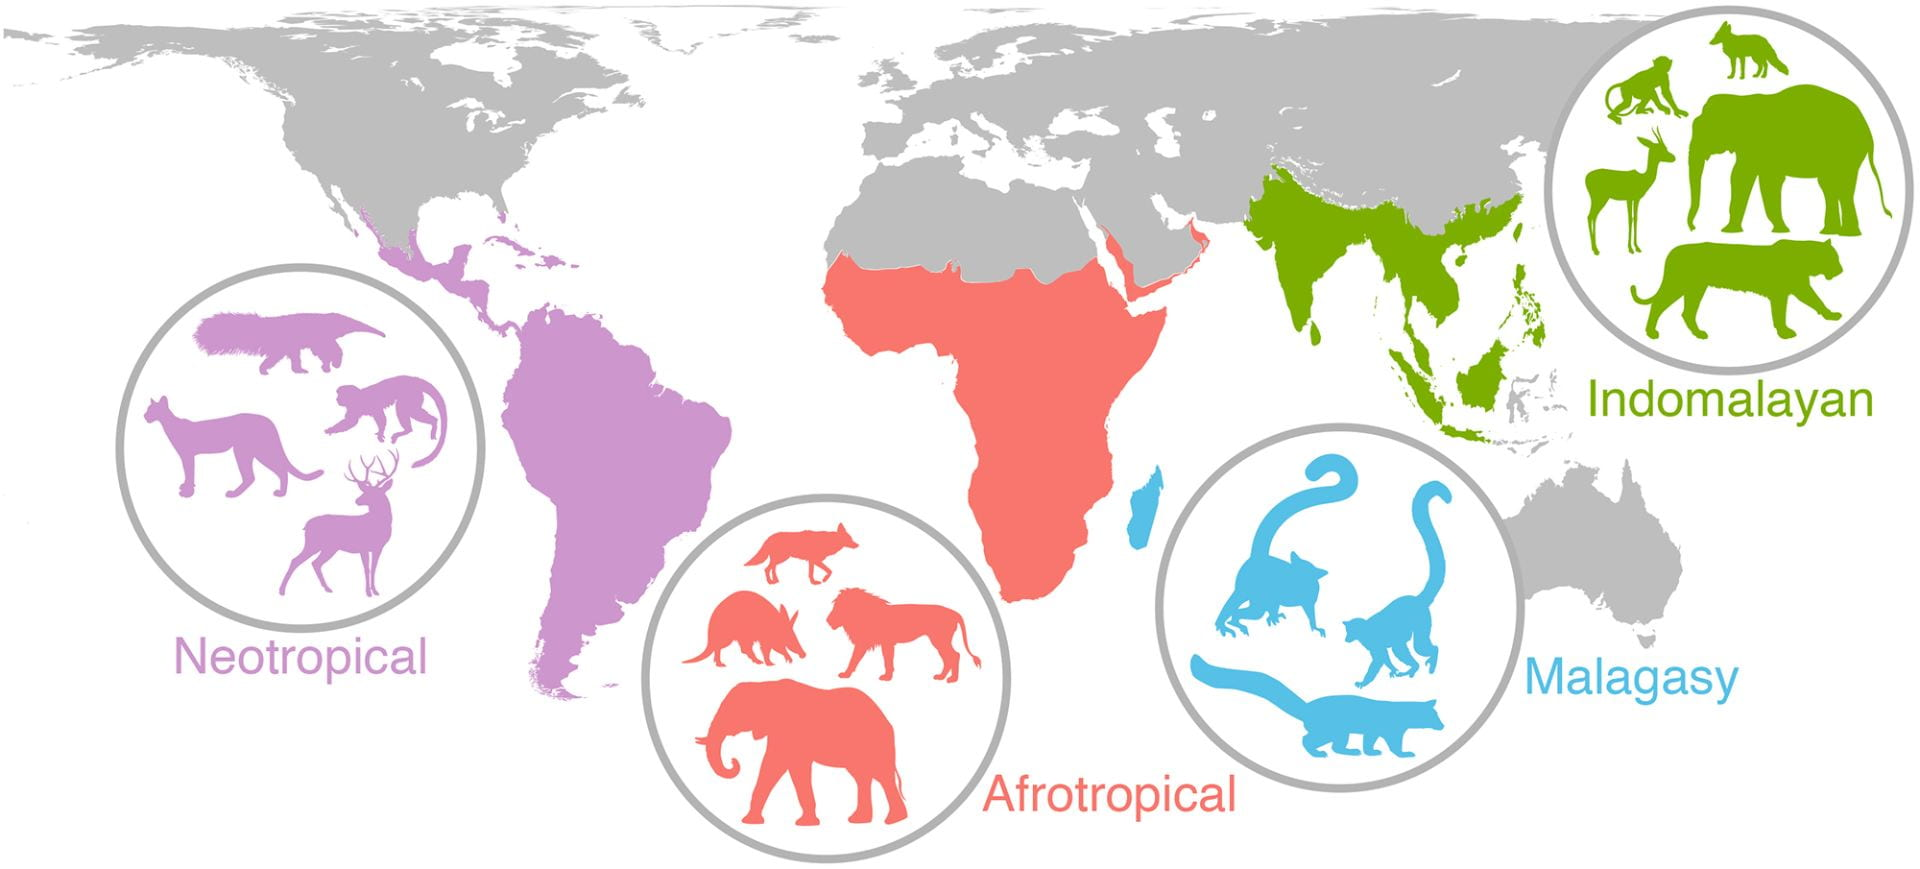 four global regions (Neotropical, Afrotropical, Malagasy, and Indomalayan) with inset unidentified animal species silhouettes for each